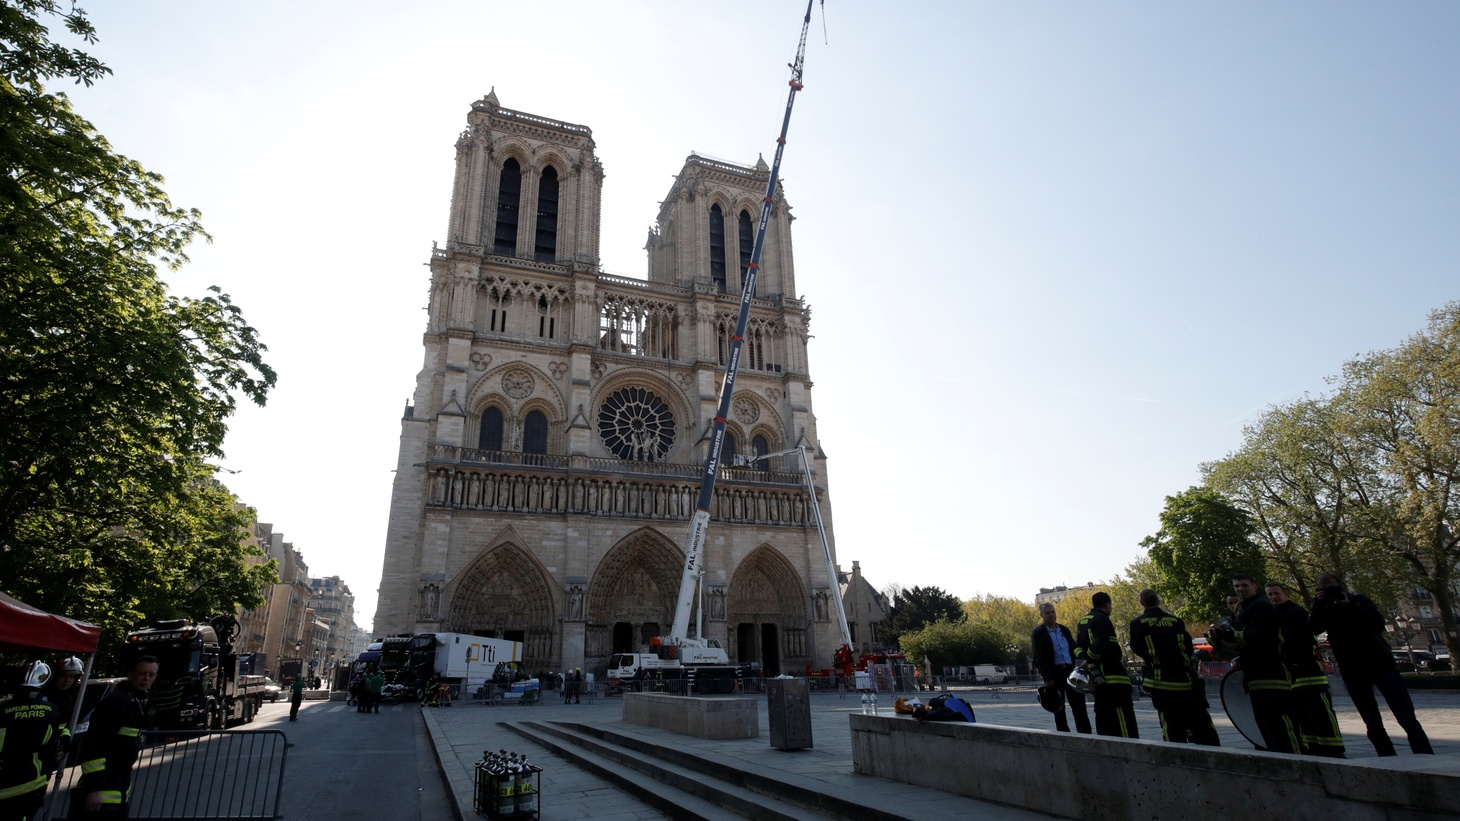 A view shows cranes working at Notre-Dame Cathedral, days after a massive fire devastated large parts of the gothic structure in Paris, France, April 19, 2019.